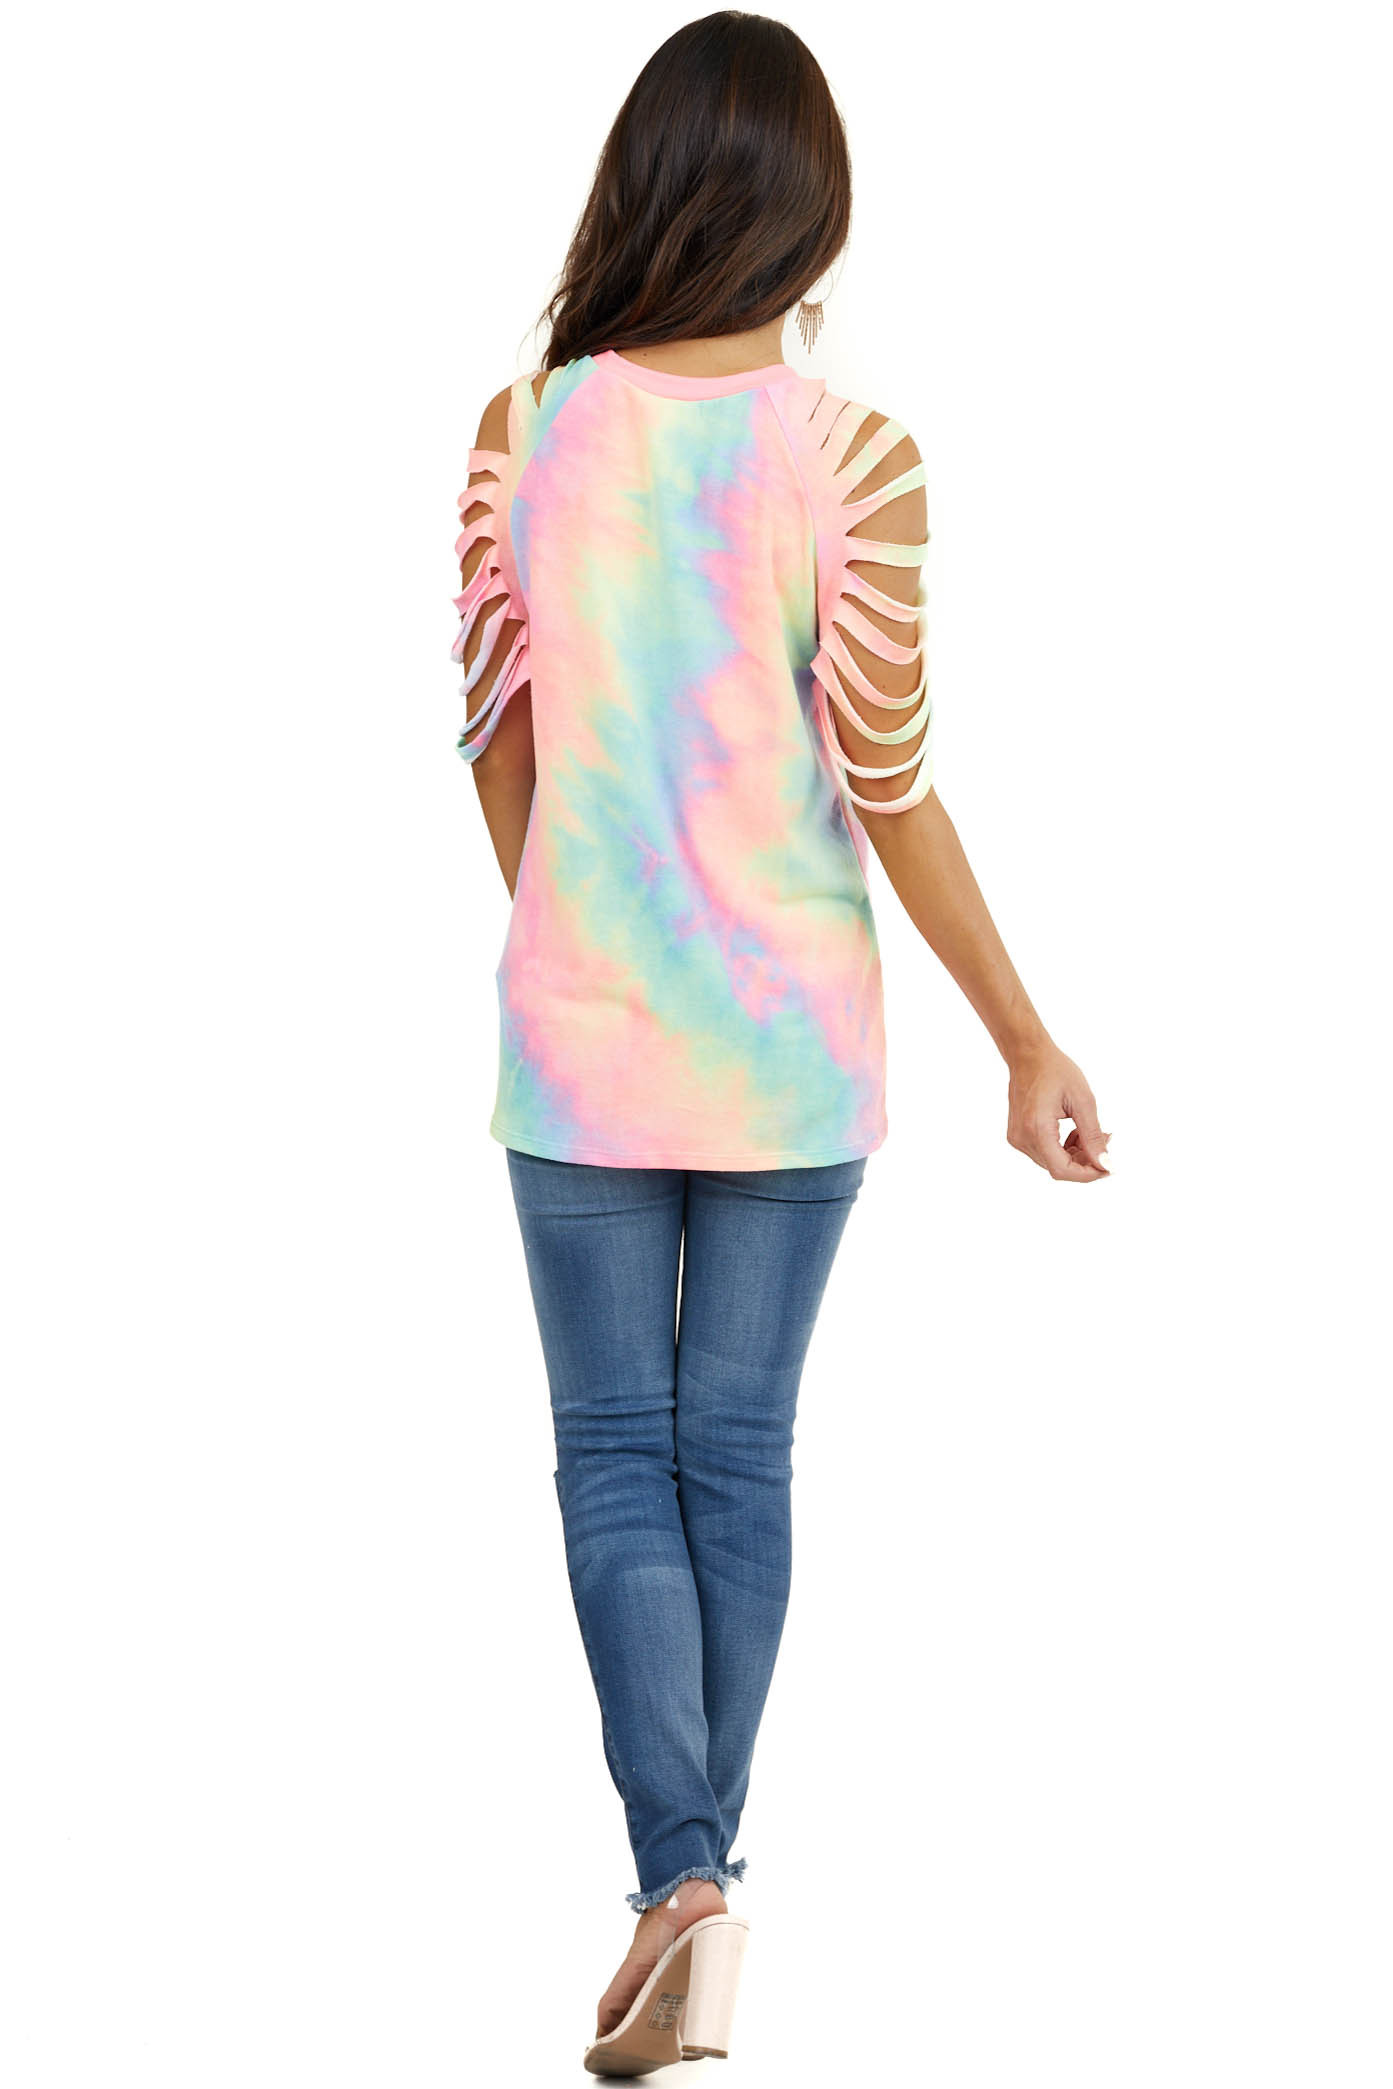 Neon Rainbow Tie Dye Top with Ladder Cutout Sleeves